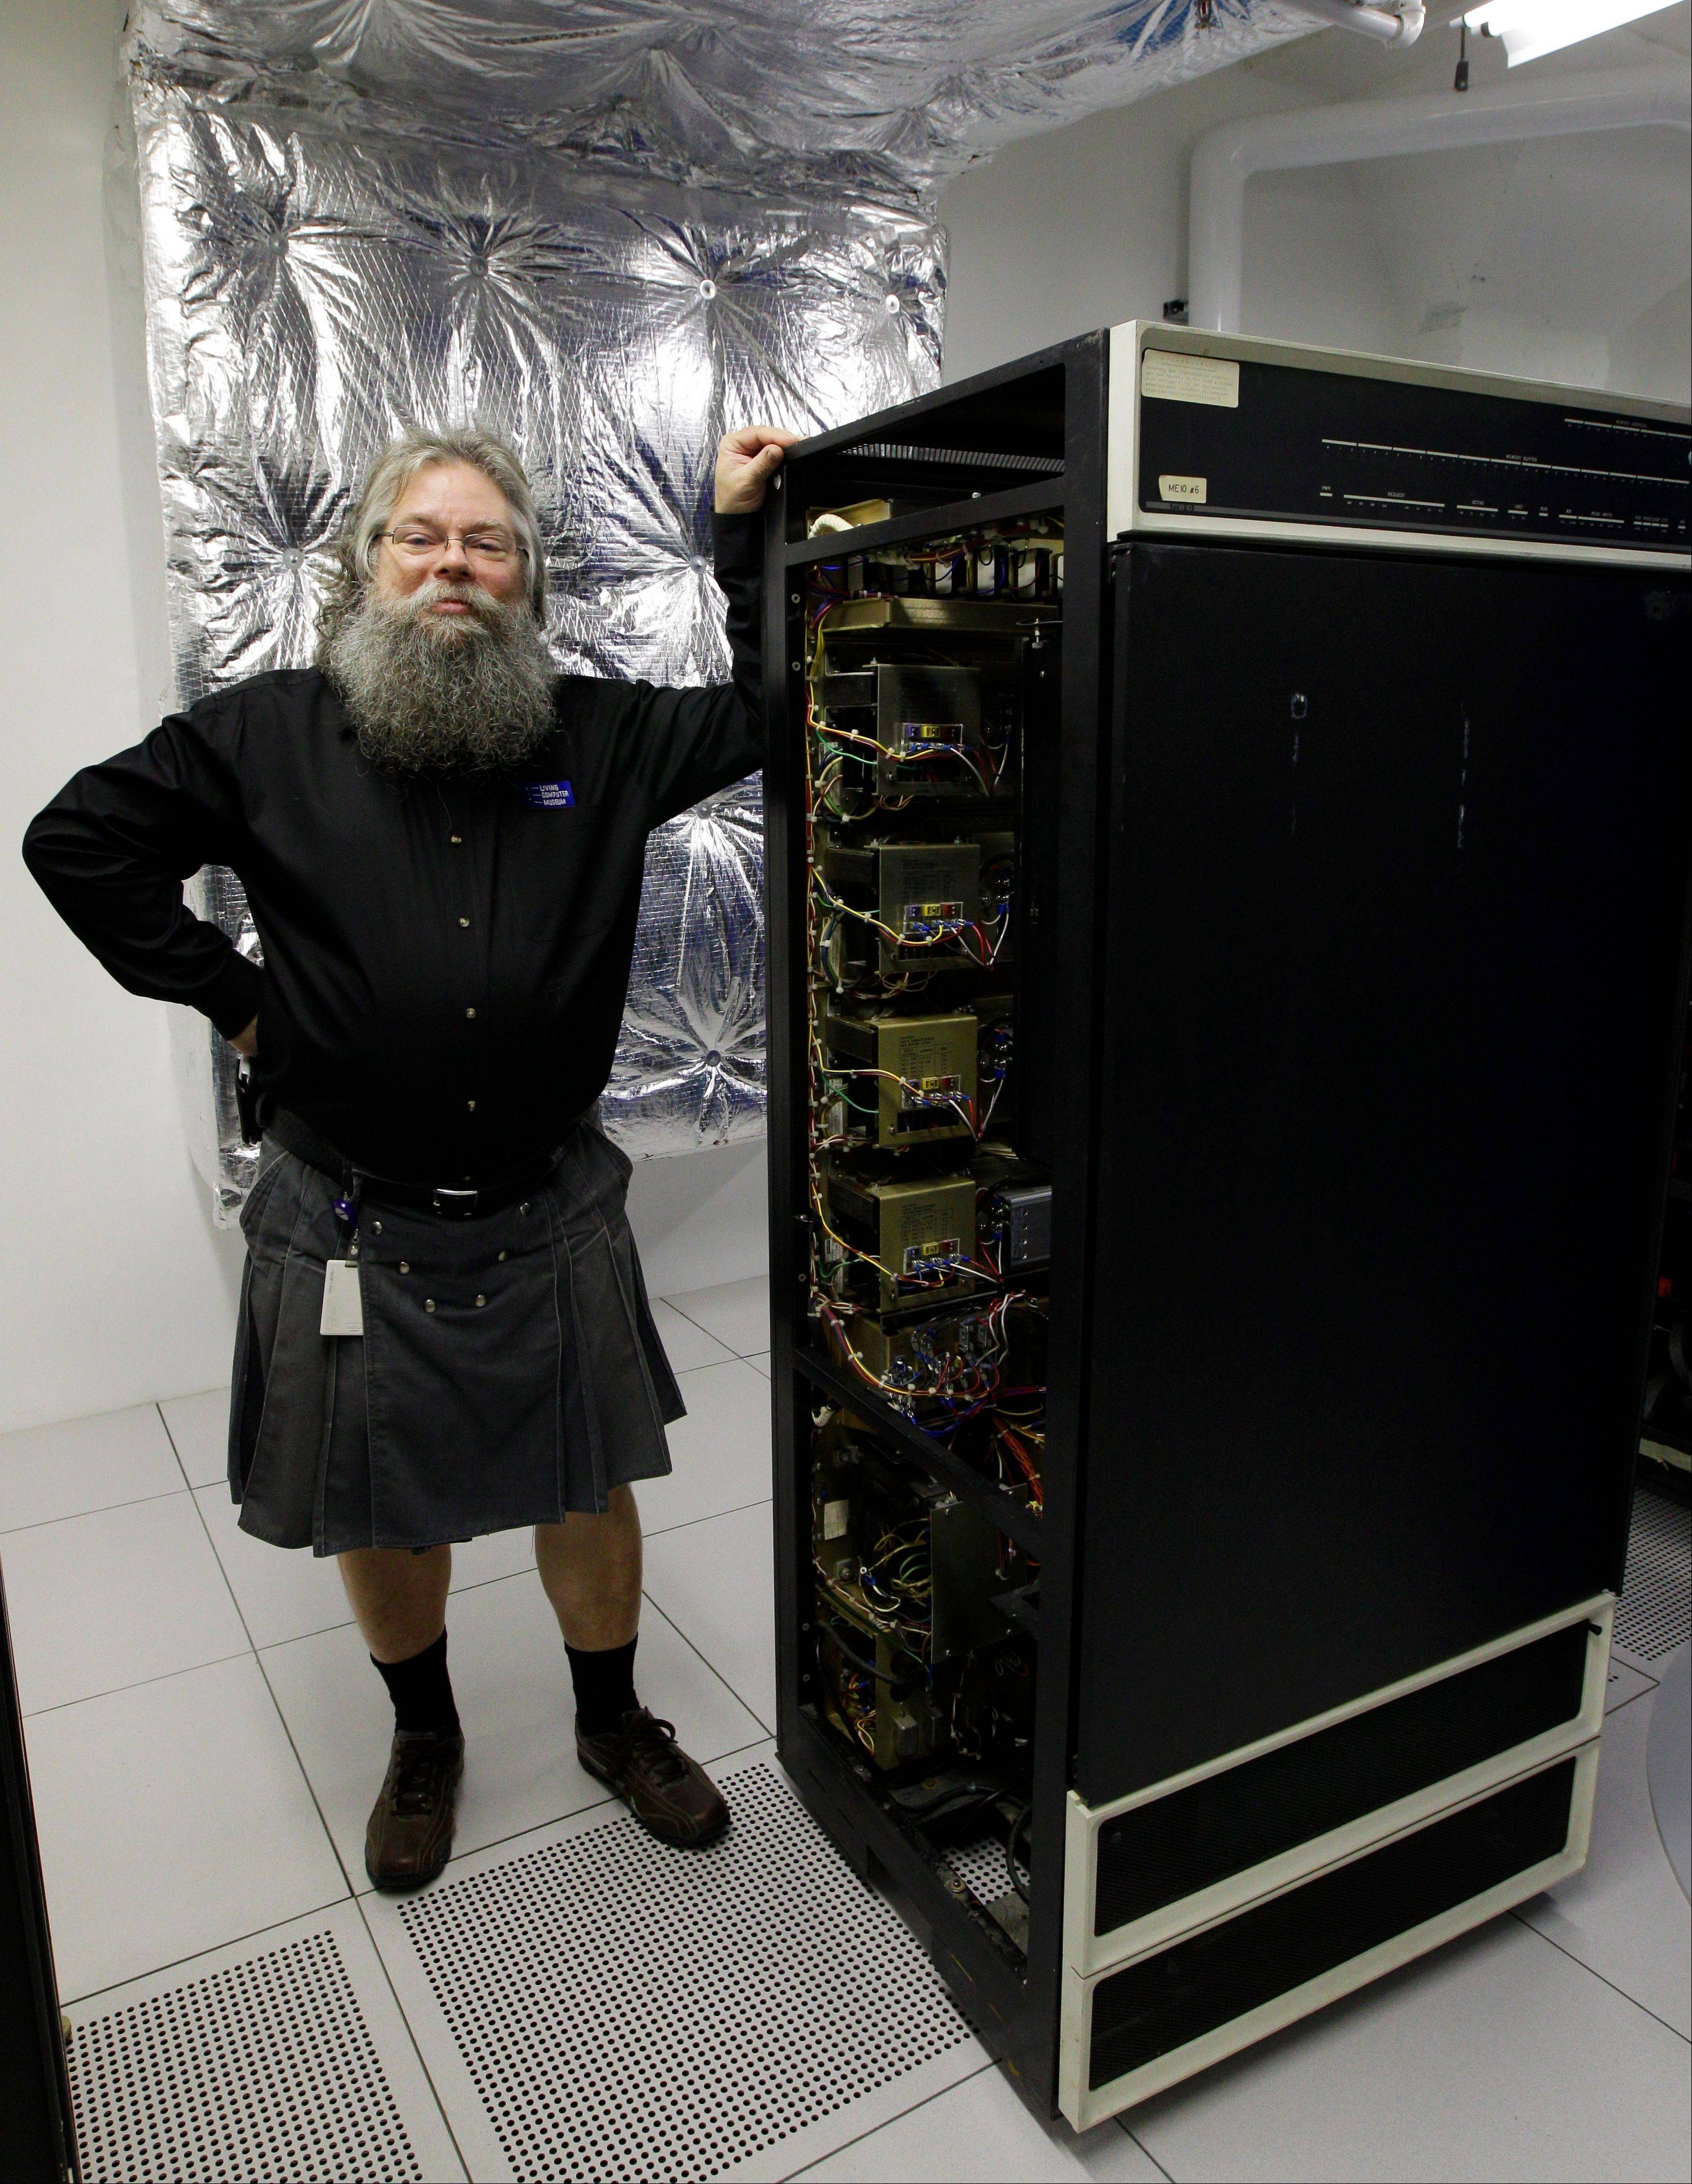 In the Living Computer Museum, Ian King shows off a memory module of a DEC PDP-10 computer that holds 16 kilobytes of computer memory.